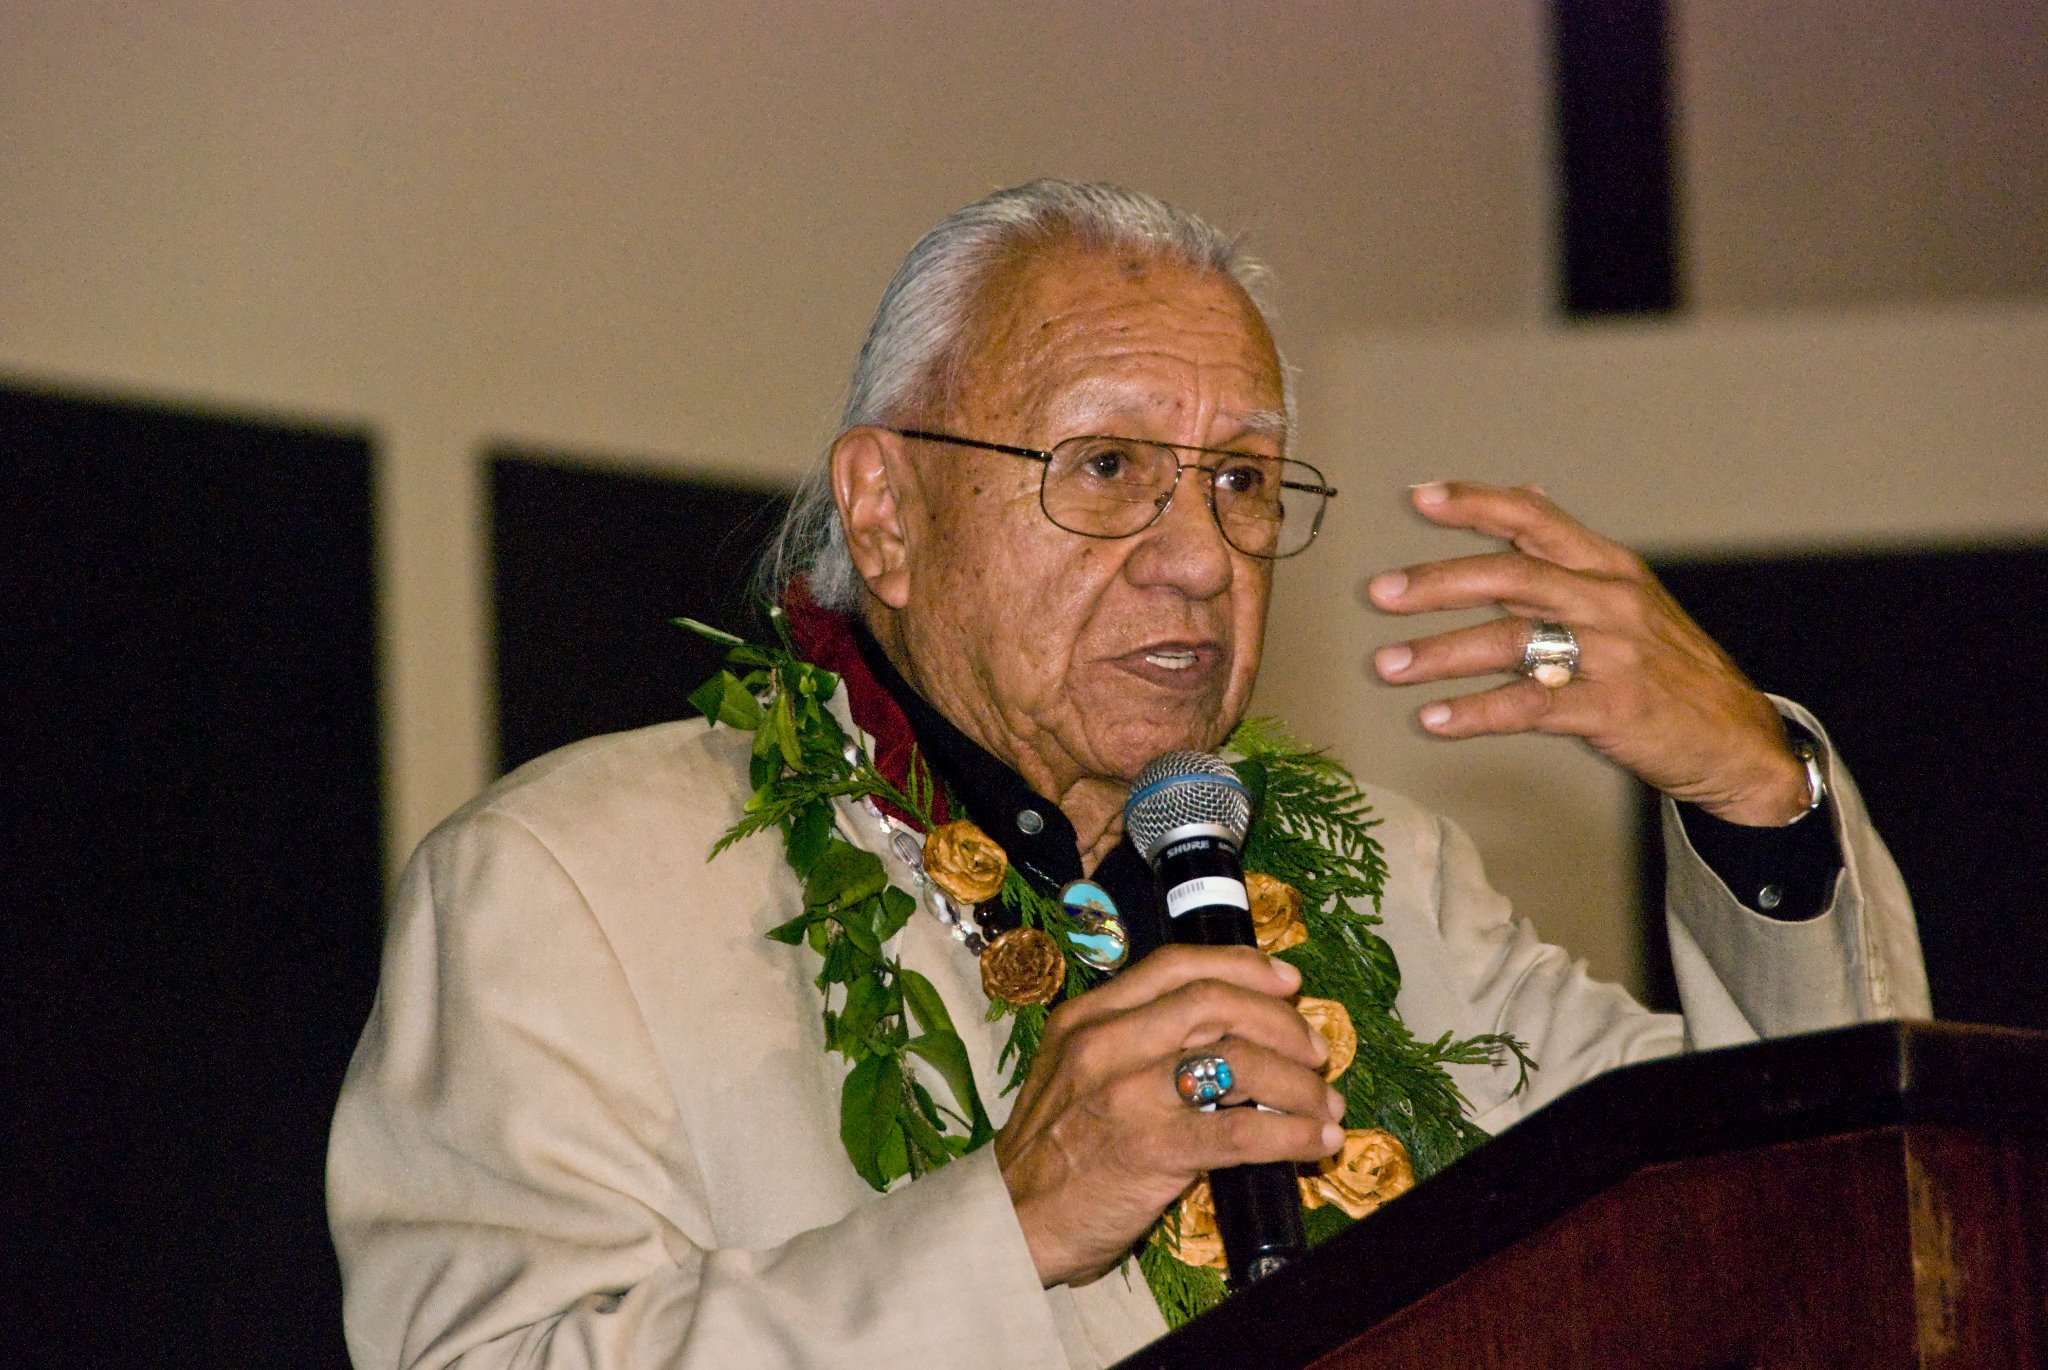 Nisqually Tribe names community building in honor of the late Billy Frank Jr.